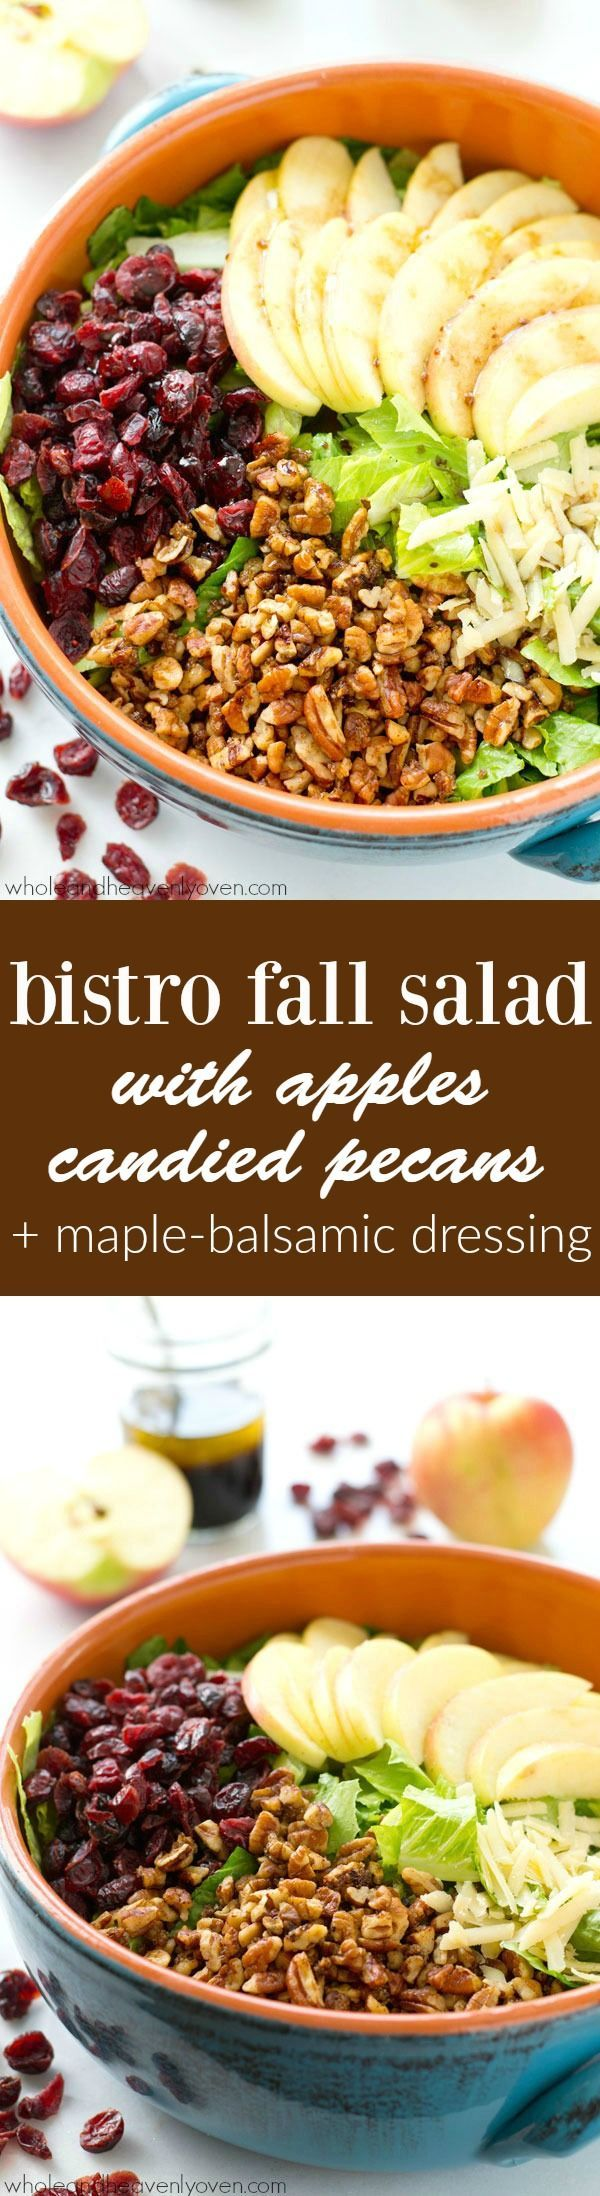 Loaded with crisp apples, homemade candied pecans, a tangy maple balsamic dressing, and tons of other fall goodness, this bistro fall salad is the ultimate way to celebrate the season!